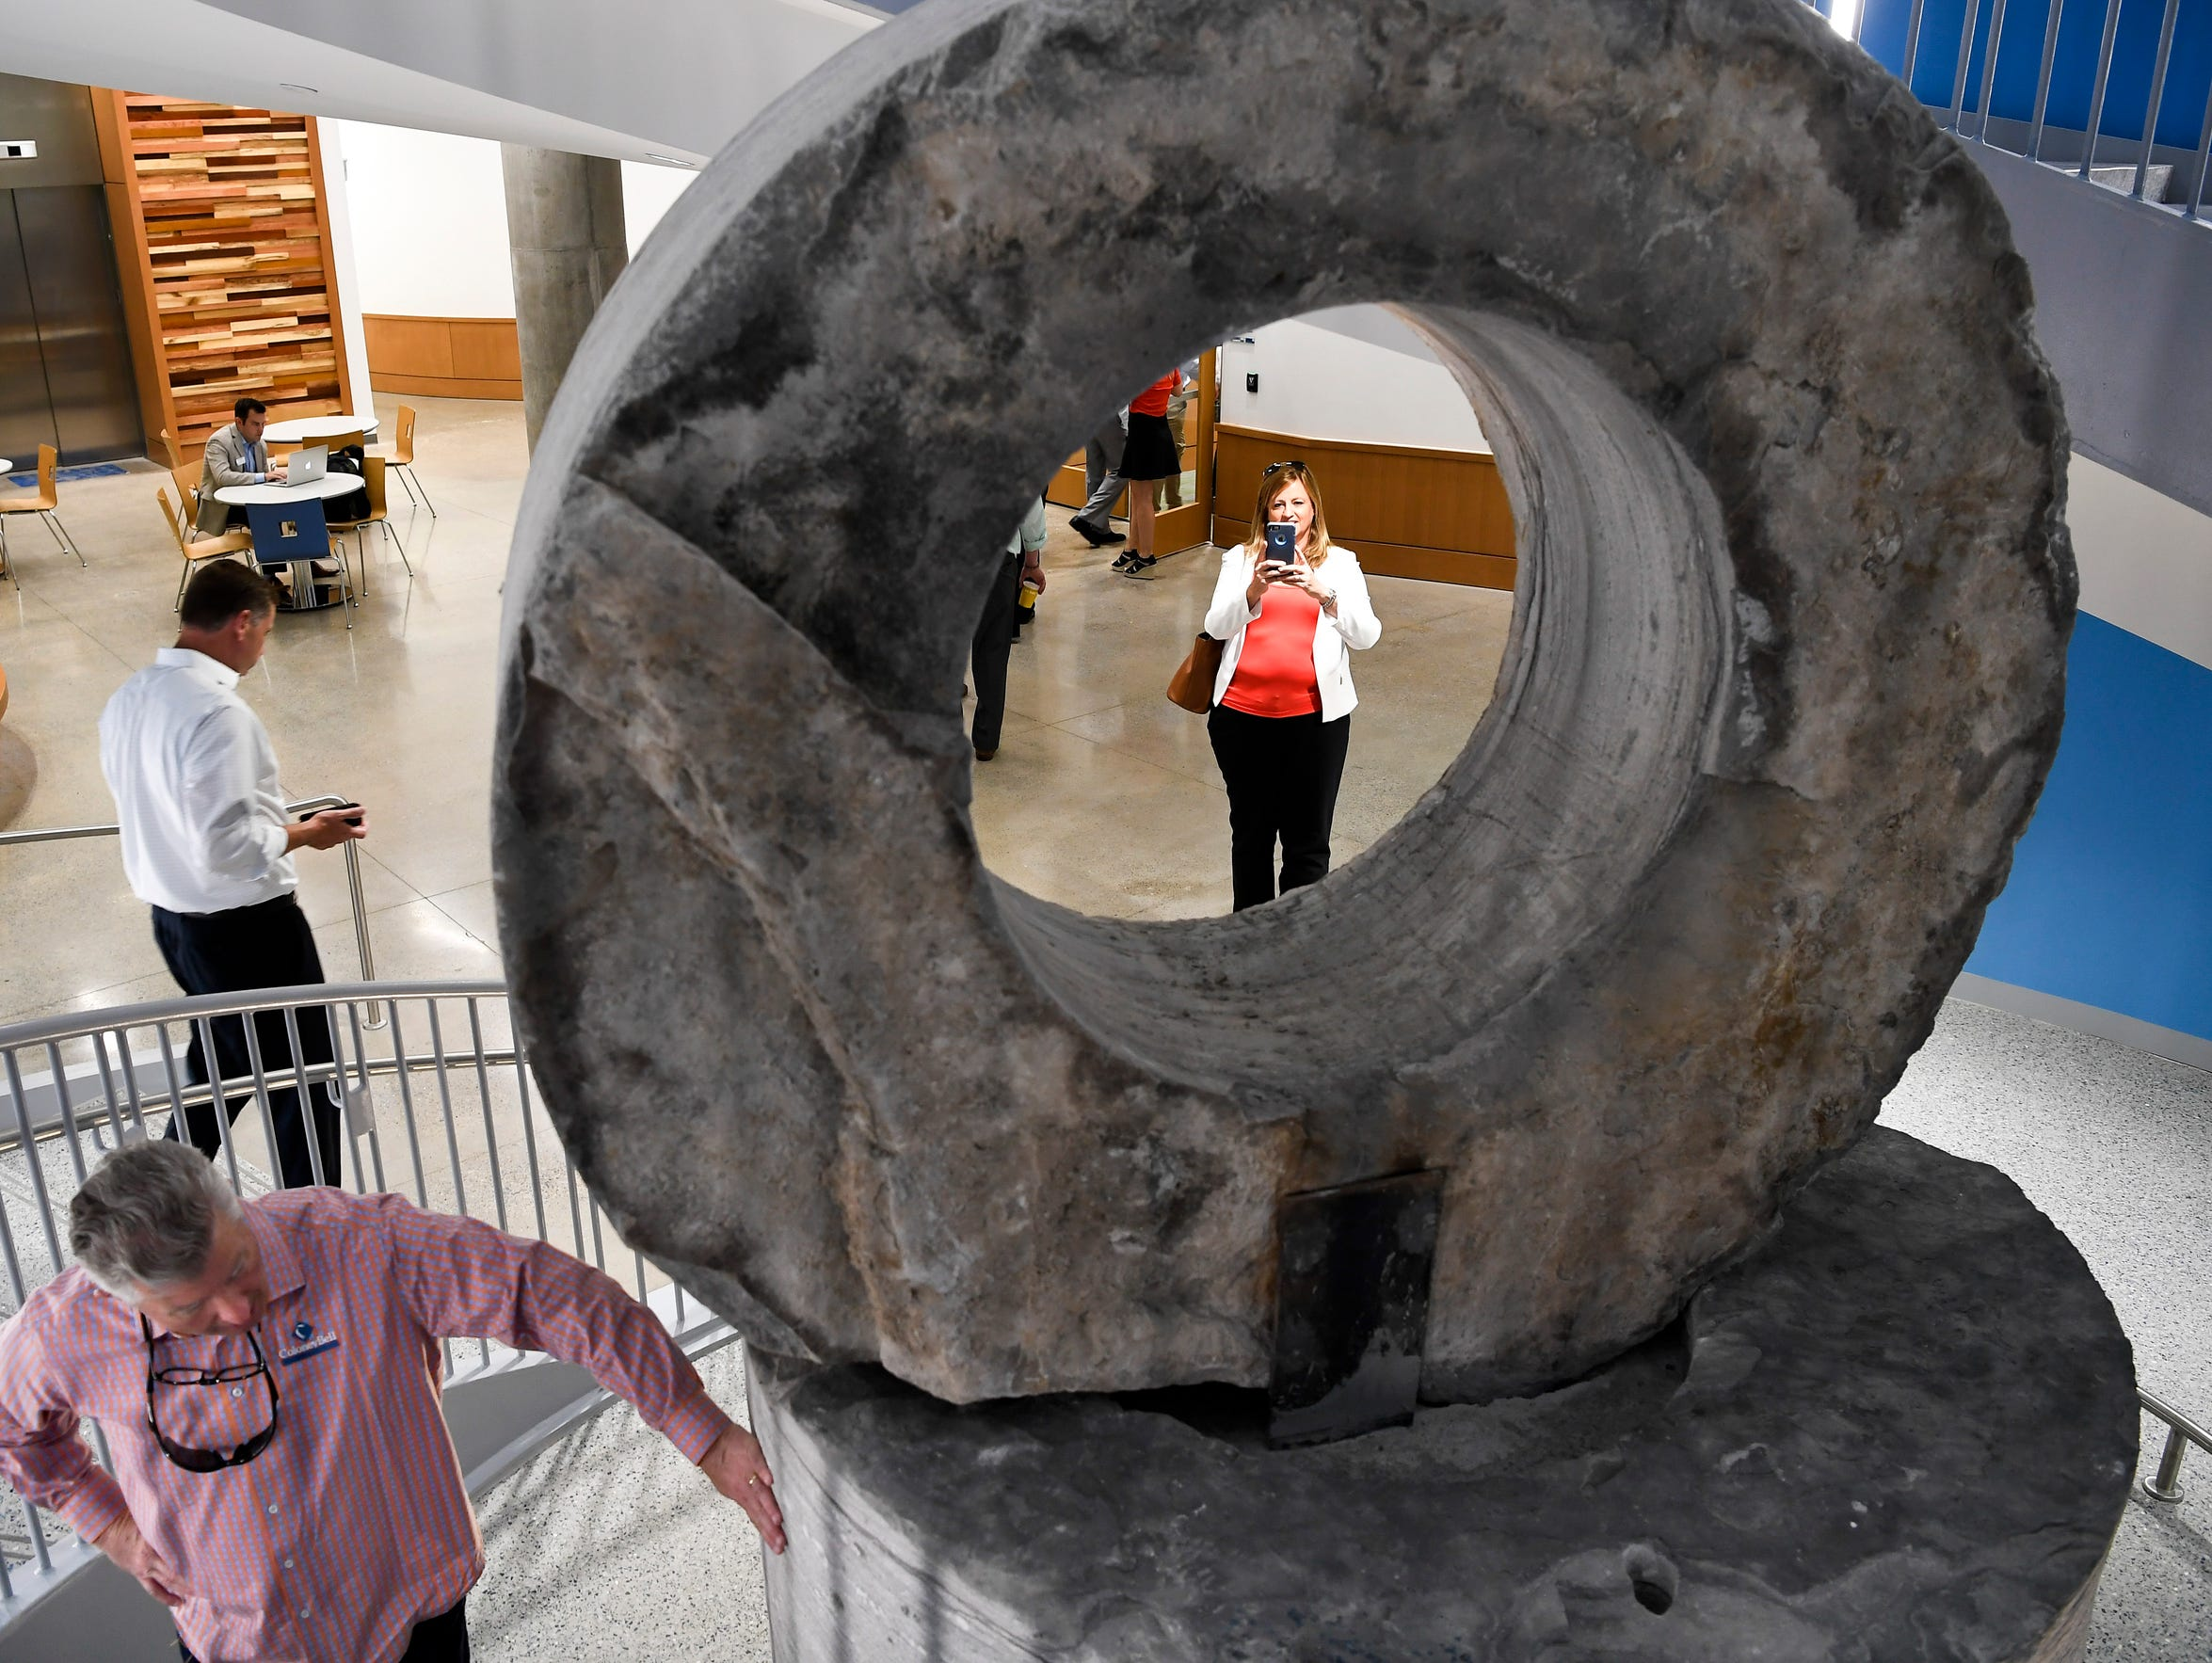 23) A cored stone sculpture is a centerpiece within